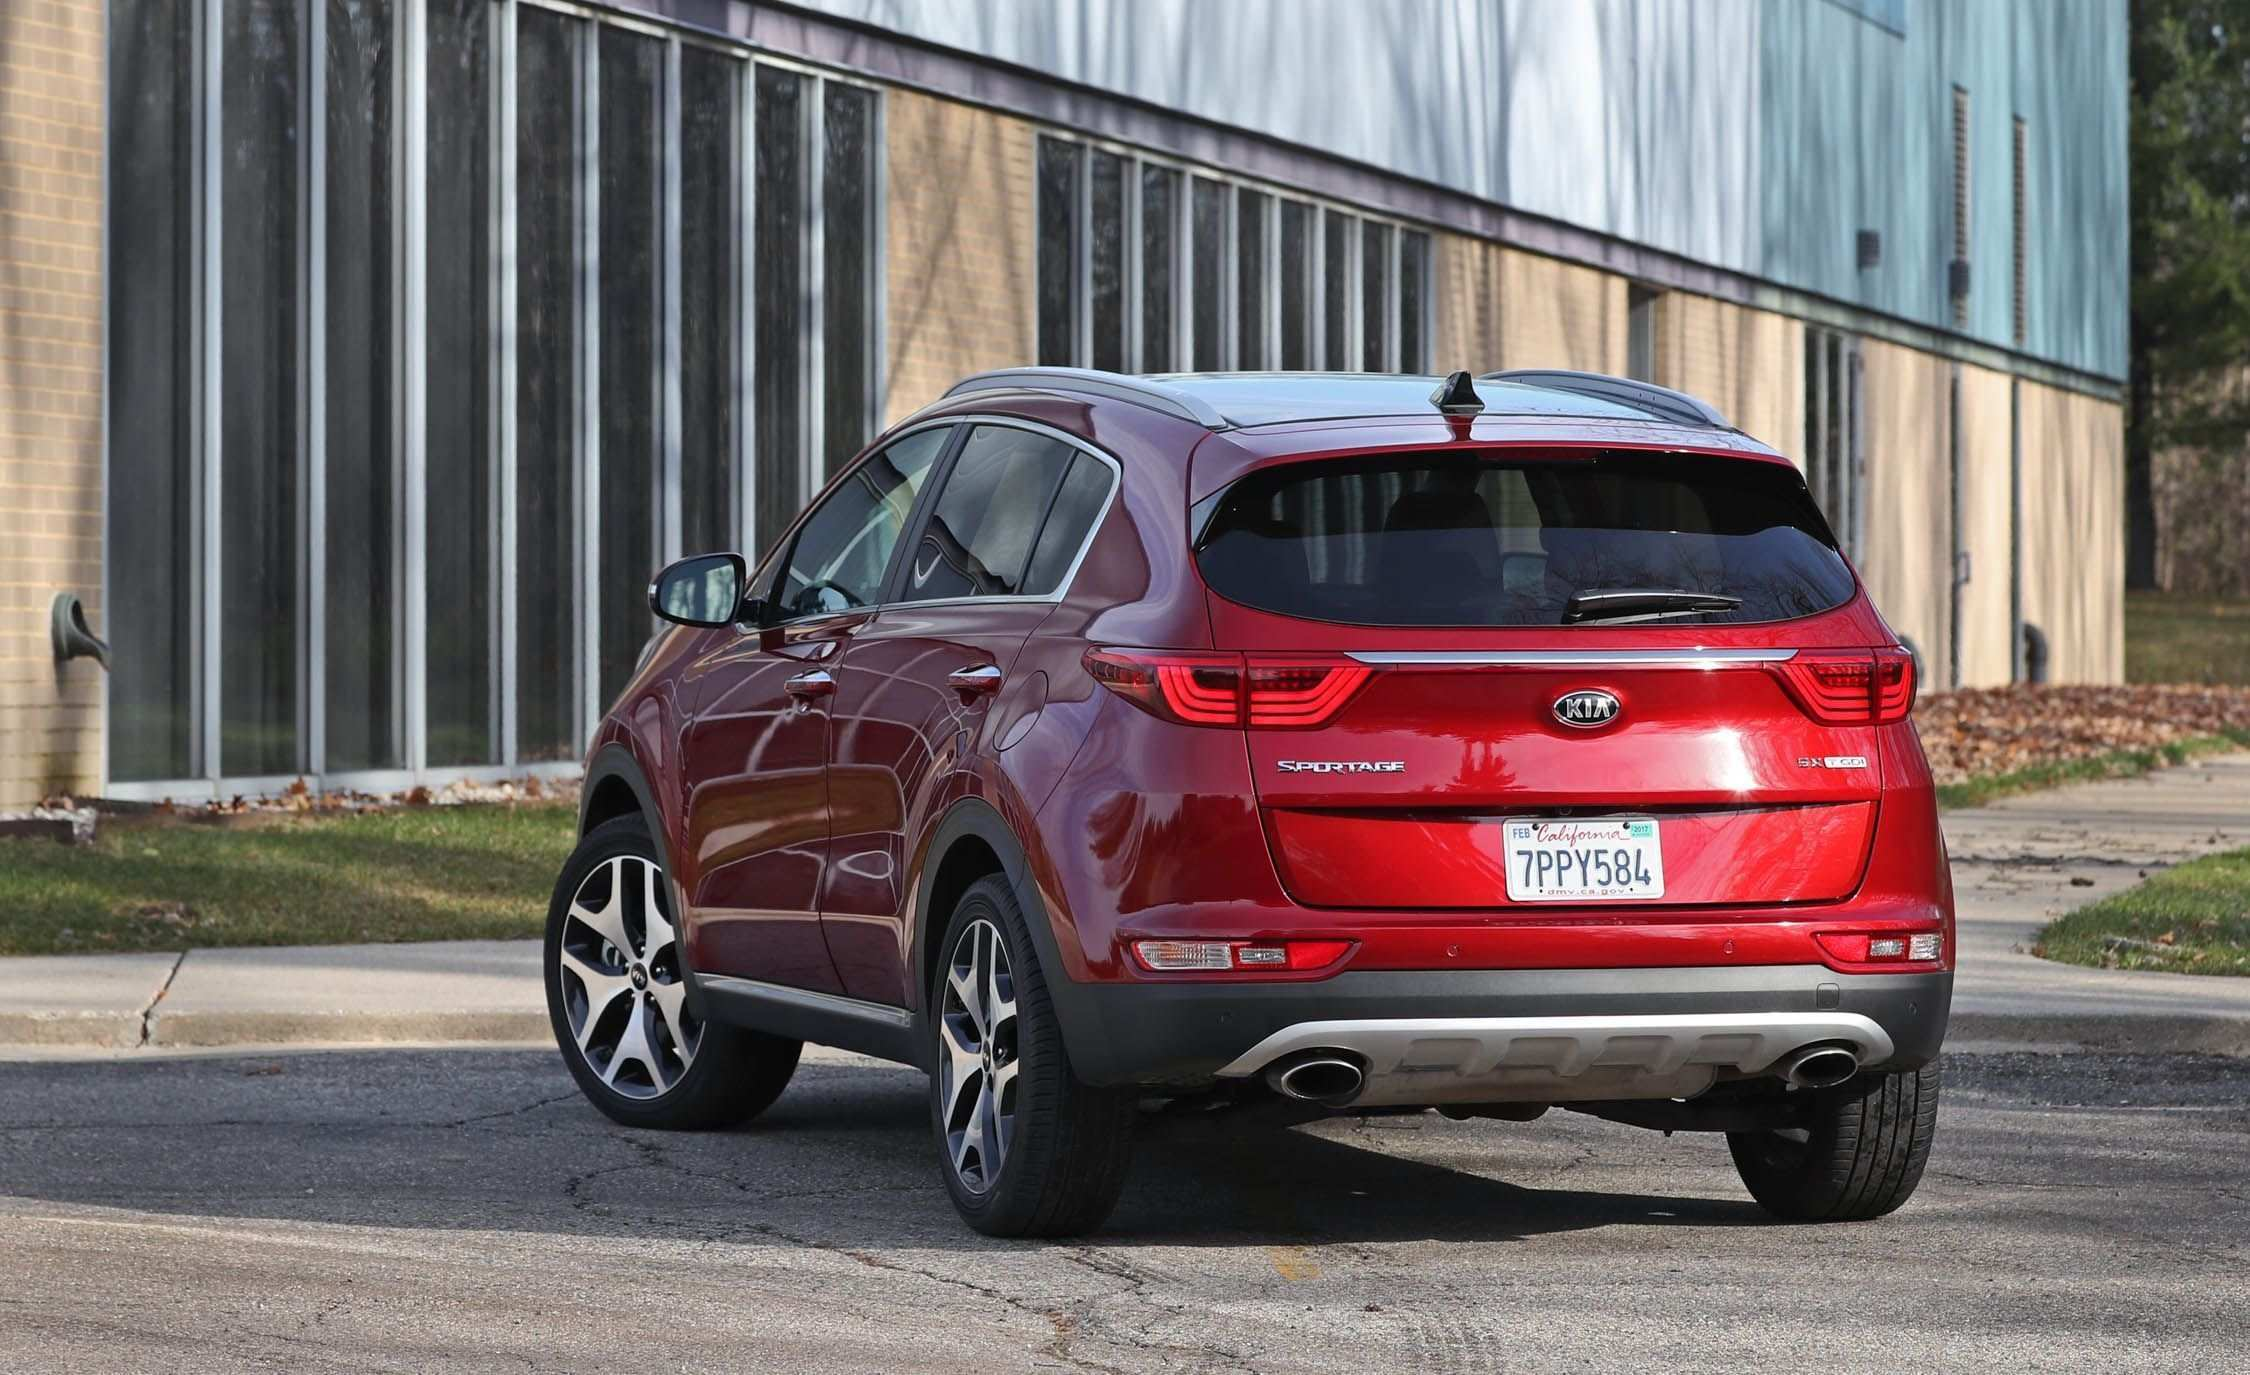 26 New The Kia Sportage 2019 Dimensions Release Date Price And Review New Concept by The Kia Sportage 2019 Dimensions Release Date Price And Review